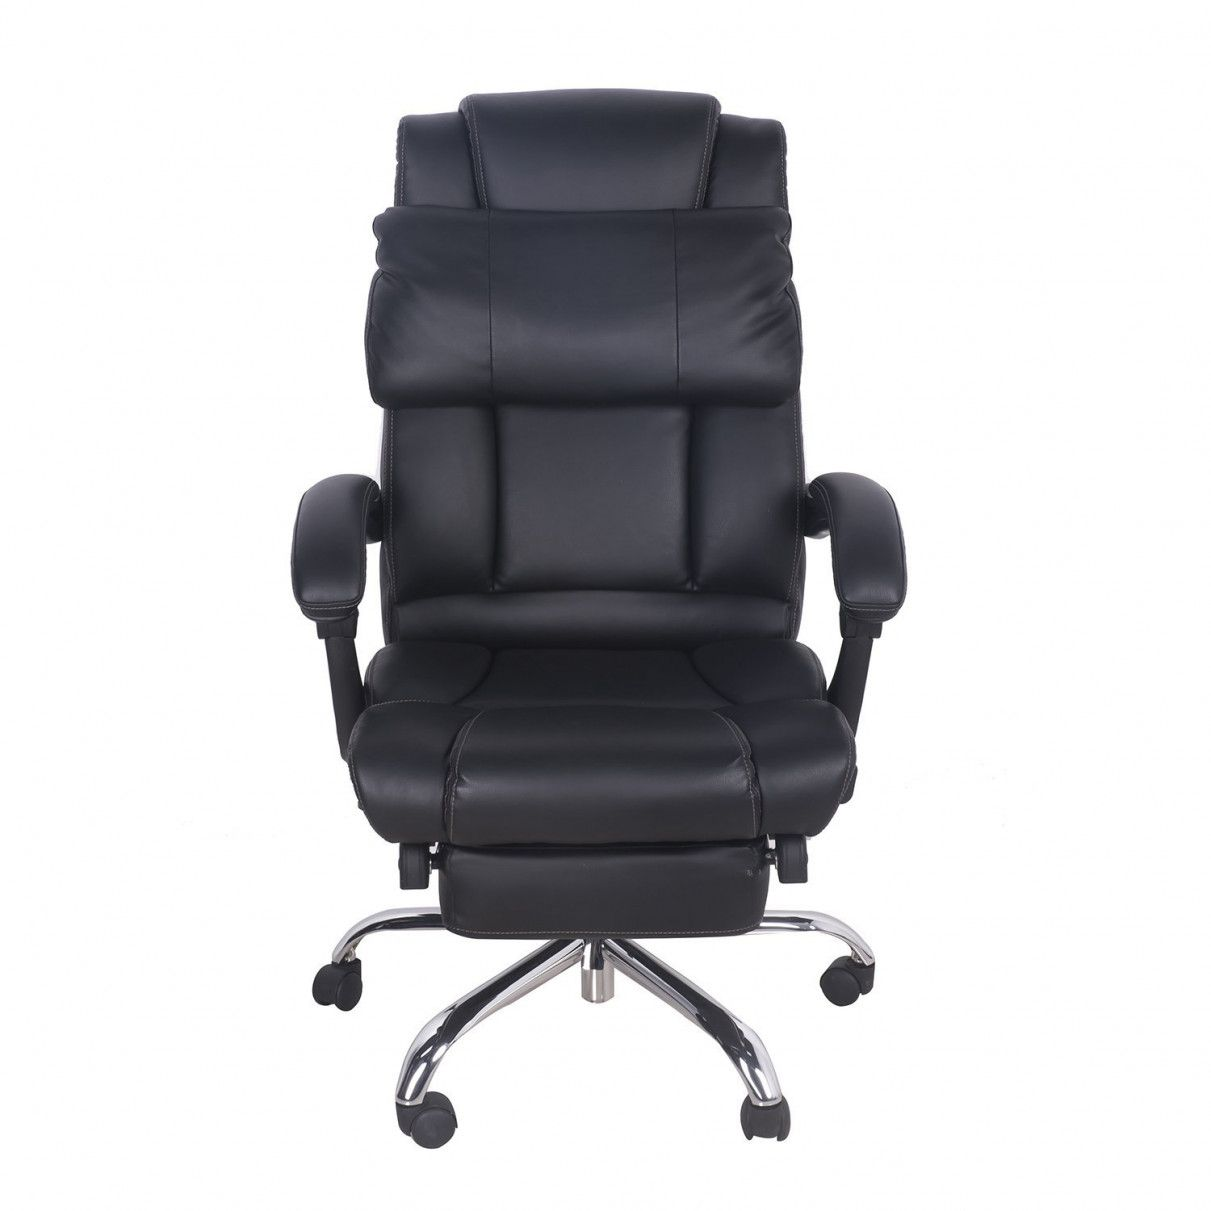 office naps. Office Chair That Reclines For Naps - Real Wood Home Furniture Check More At Http